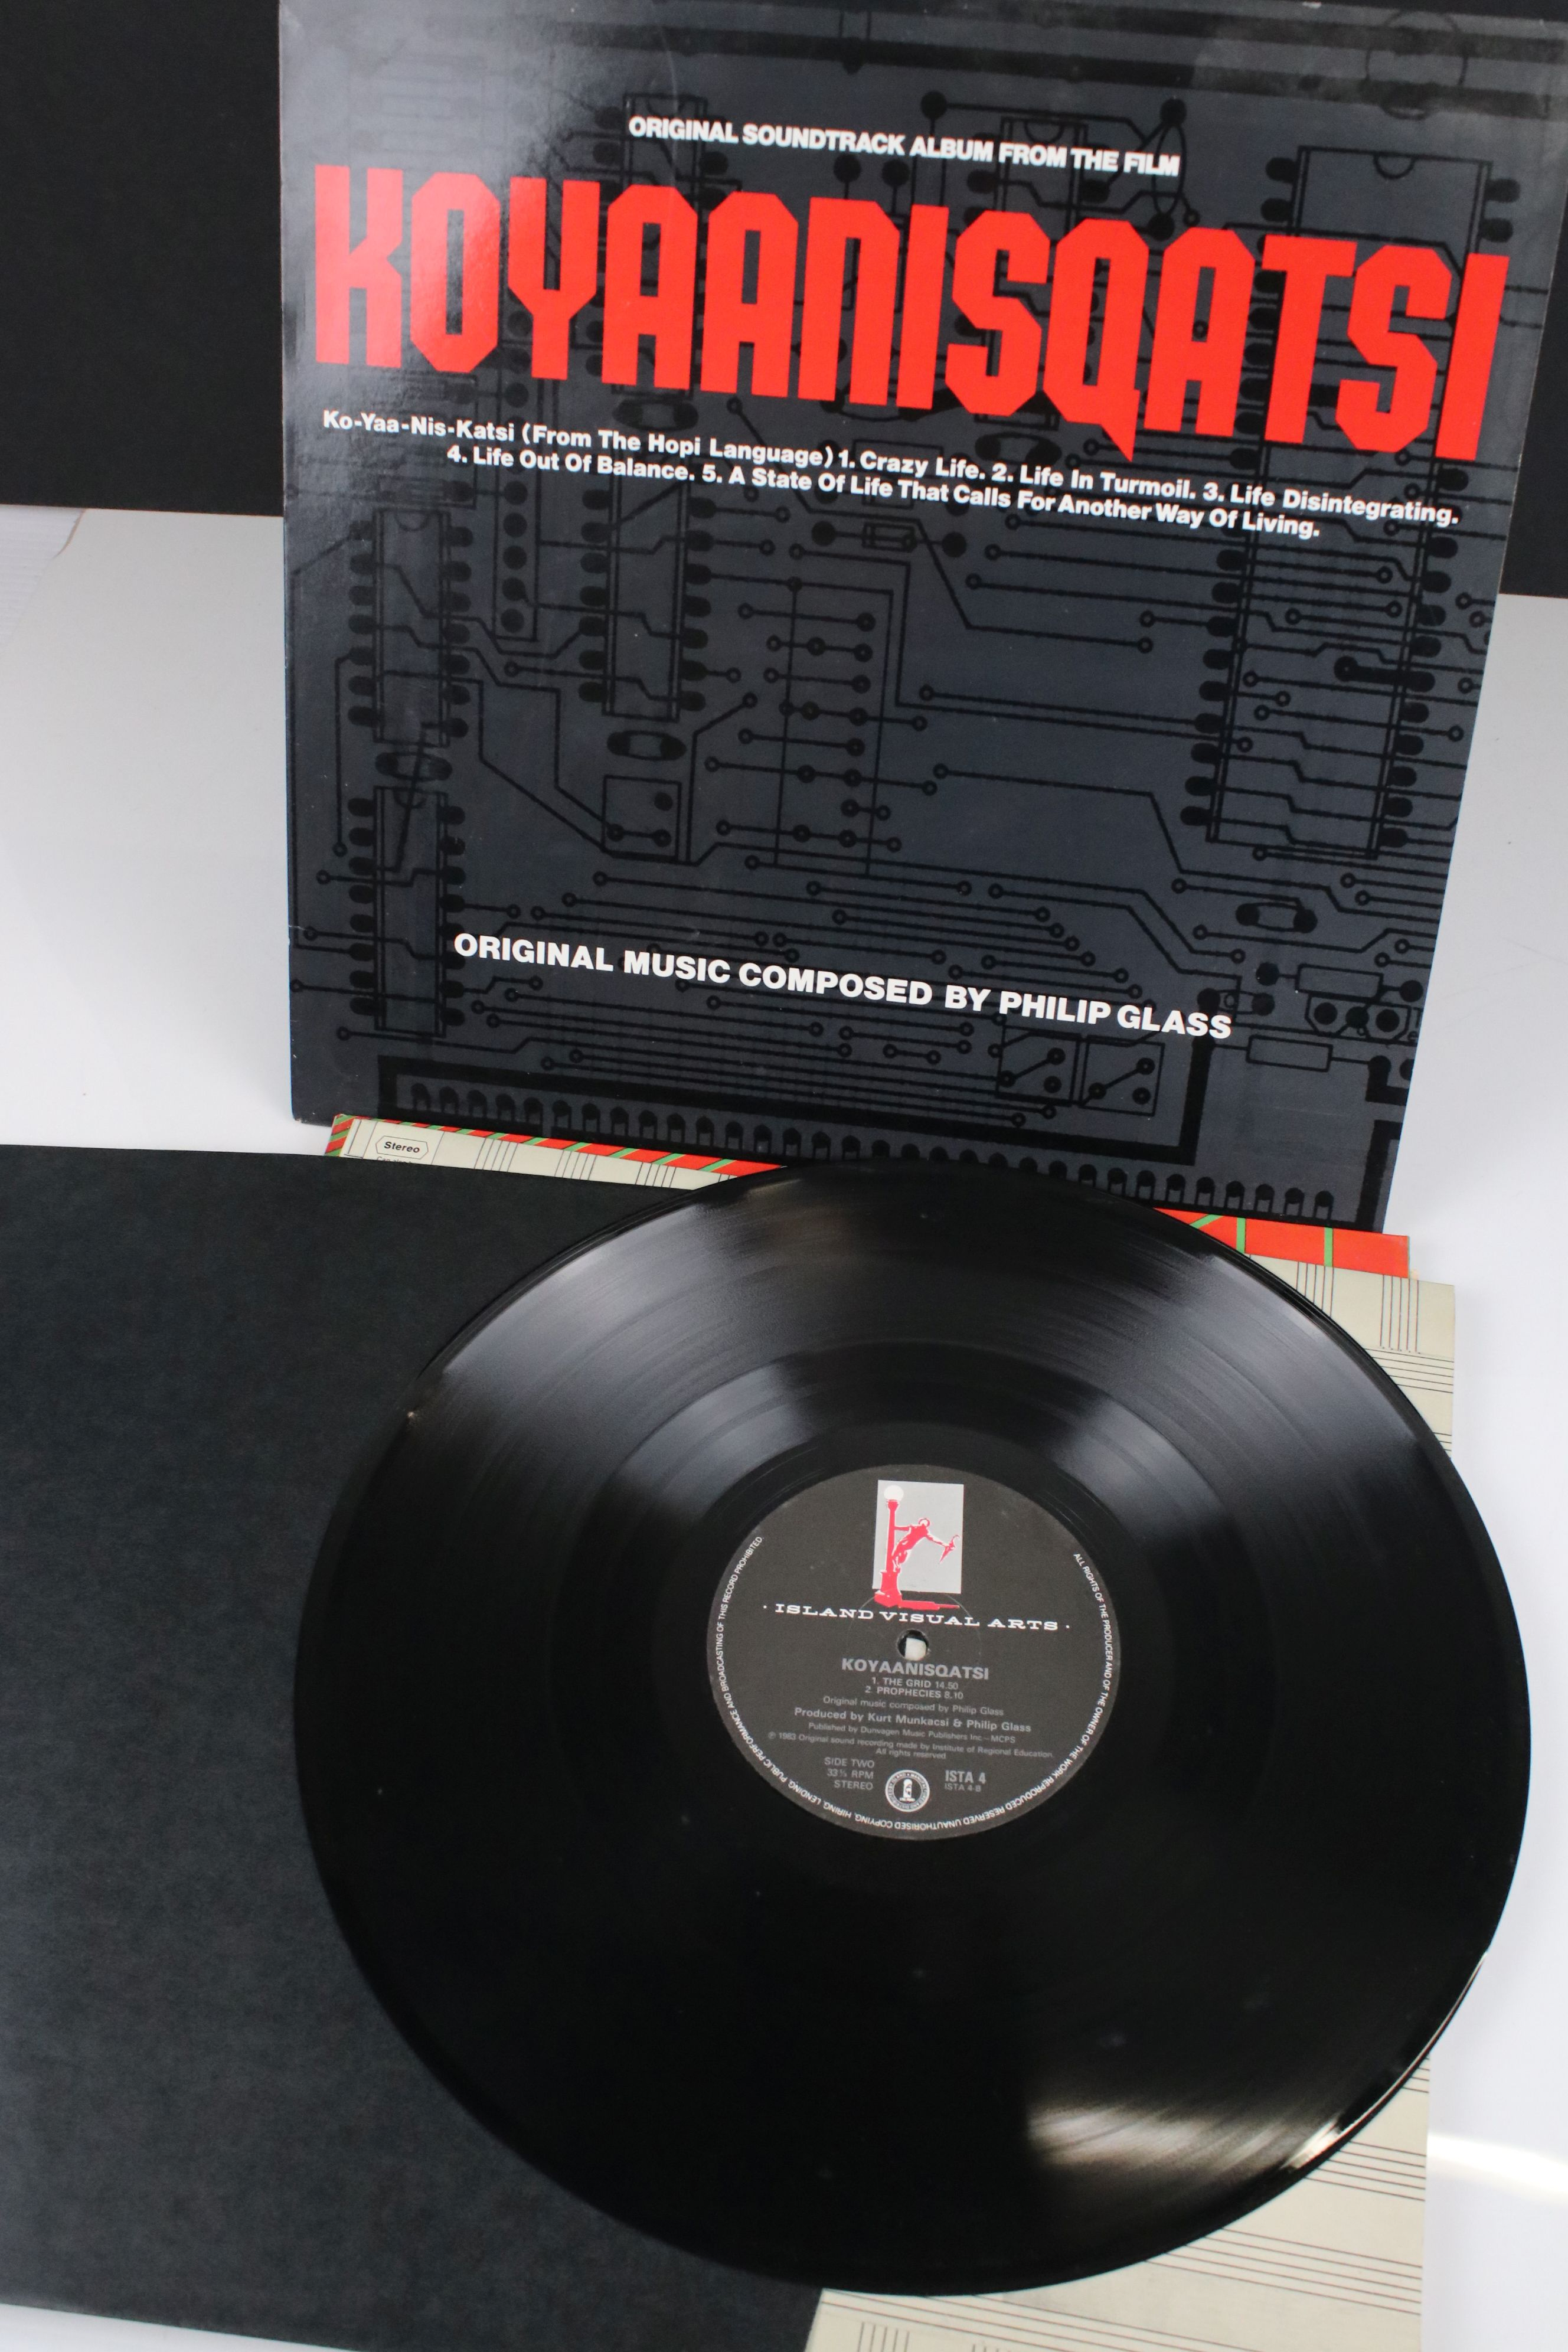 Vinyl - Four Electronic Classical LPs to include Terry Riley In C, Philip Glass Koyaanisqqatsi, - Image 5 of 6